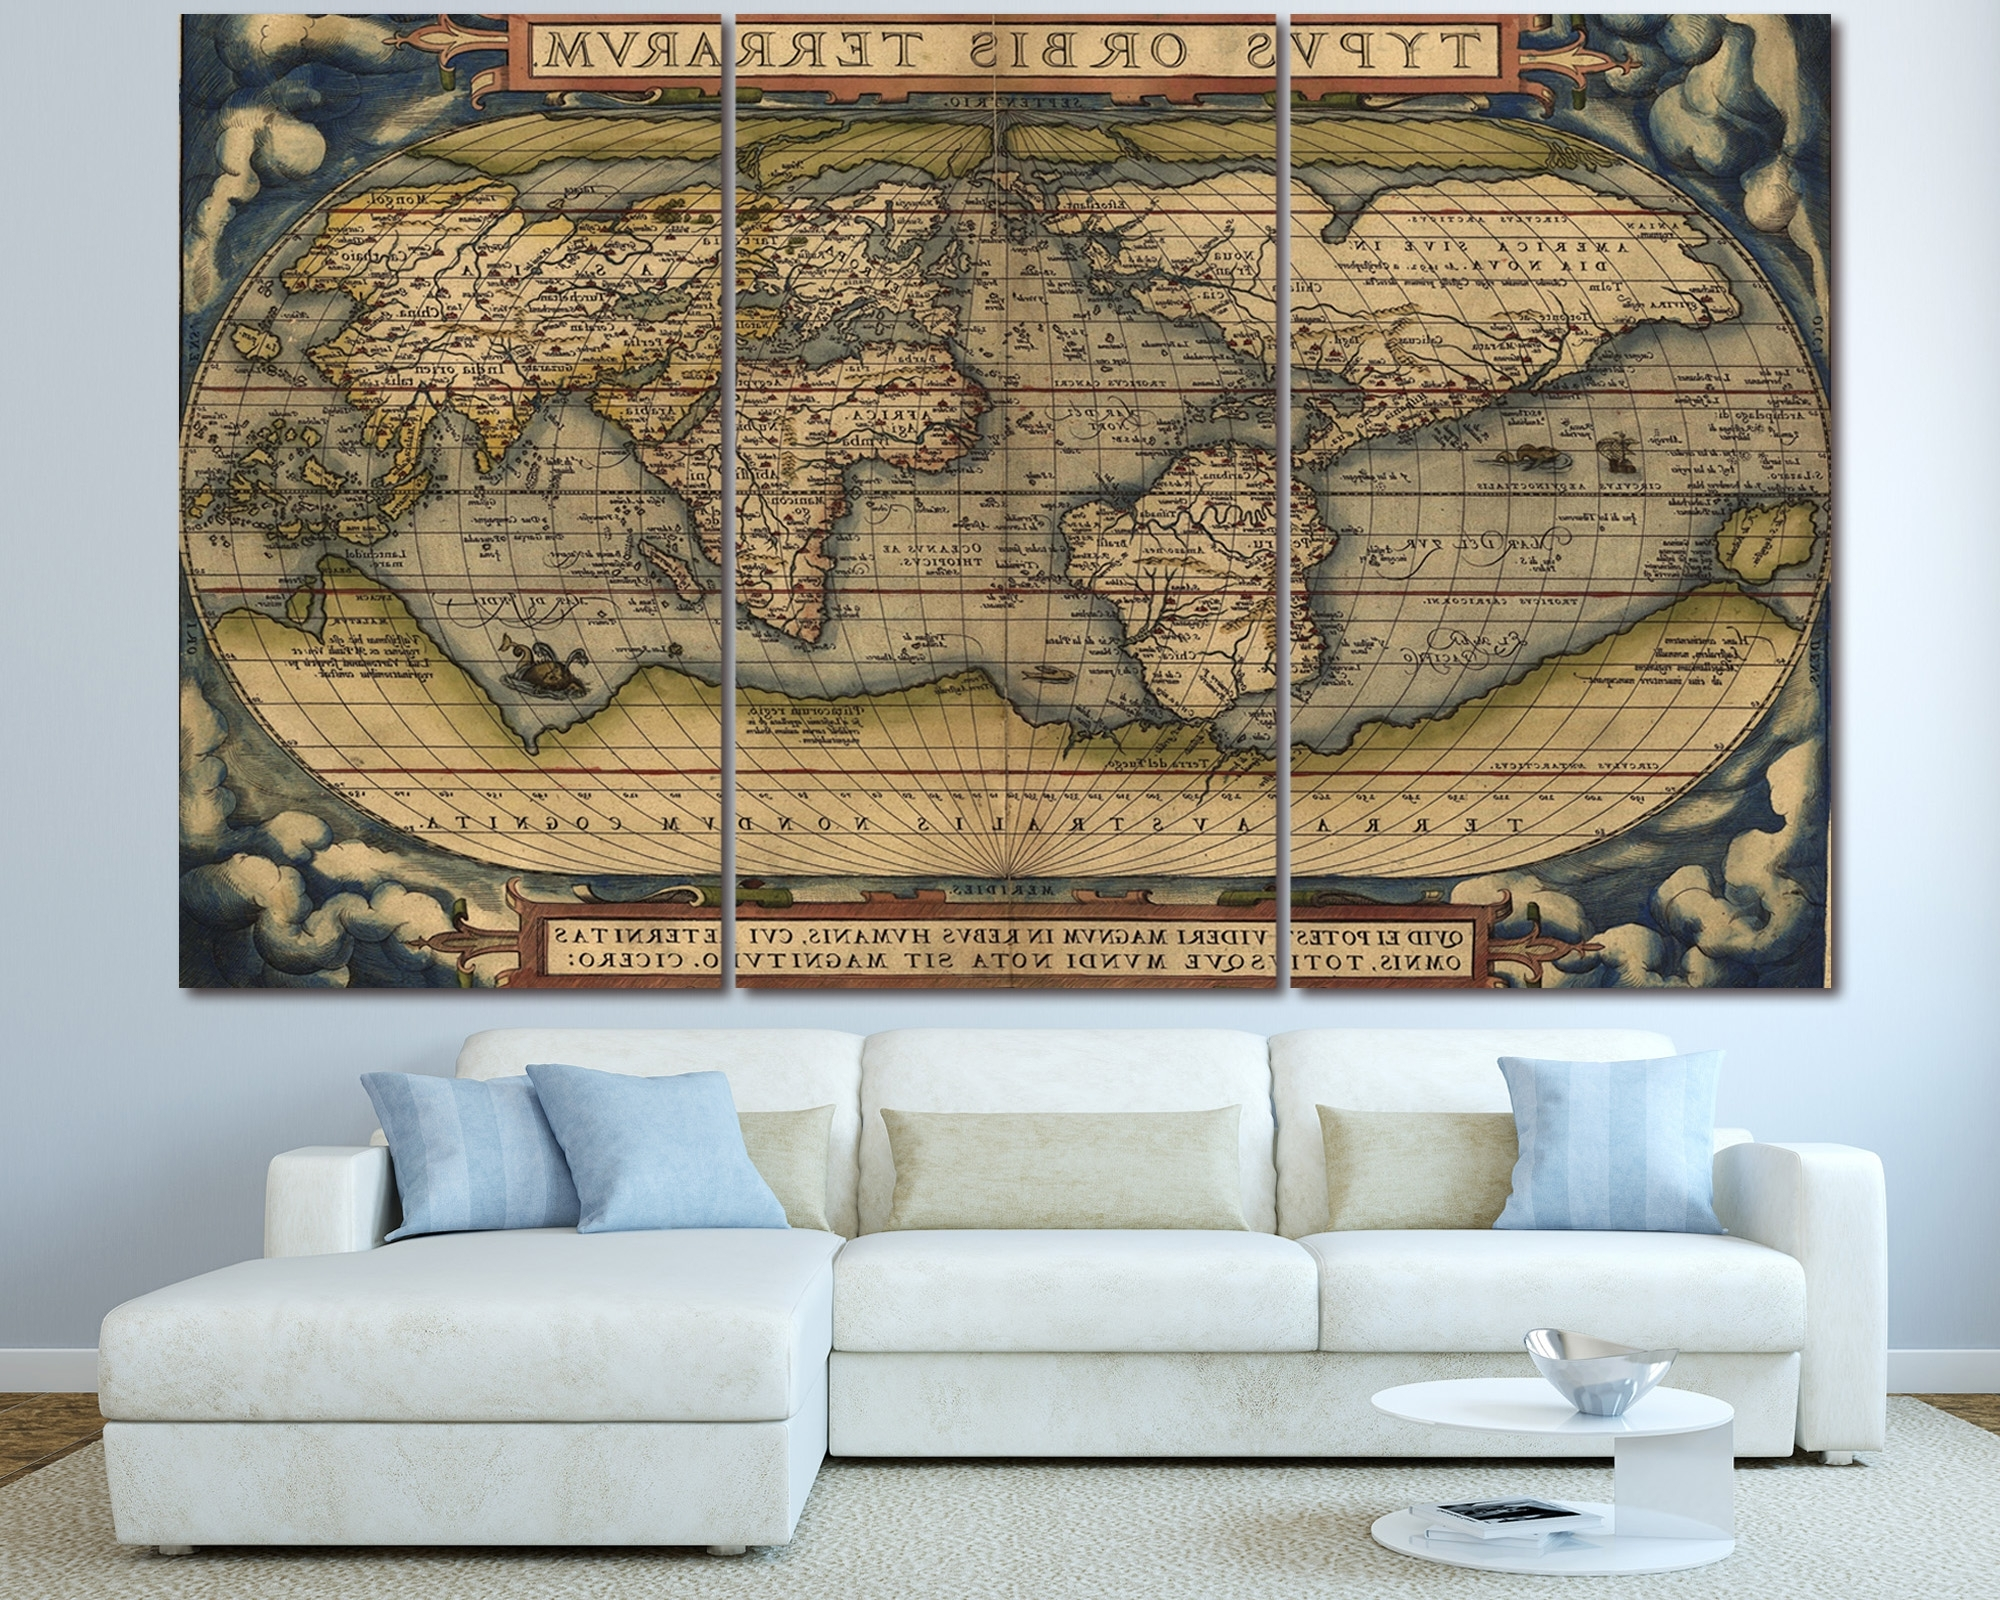 Vintage Map Wall Art Inside Well Liked Large Vintage World Map 3 Panel Wall Art At Texelprintart (View 12 of 15)